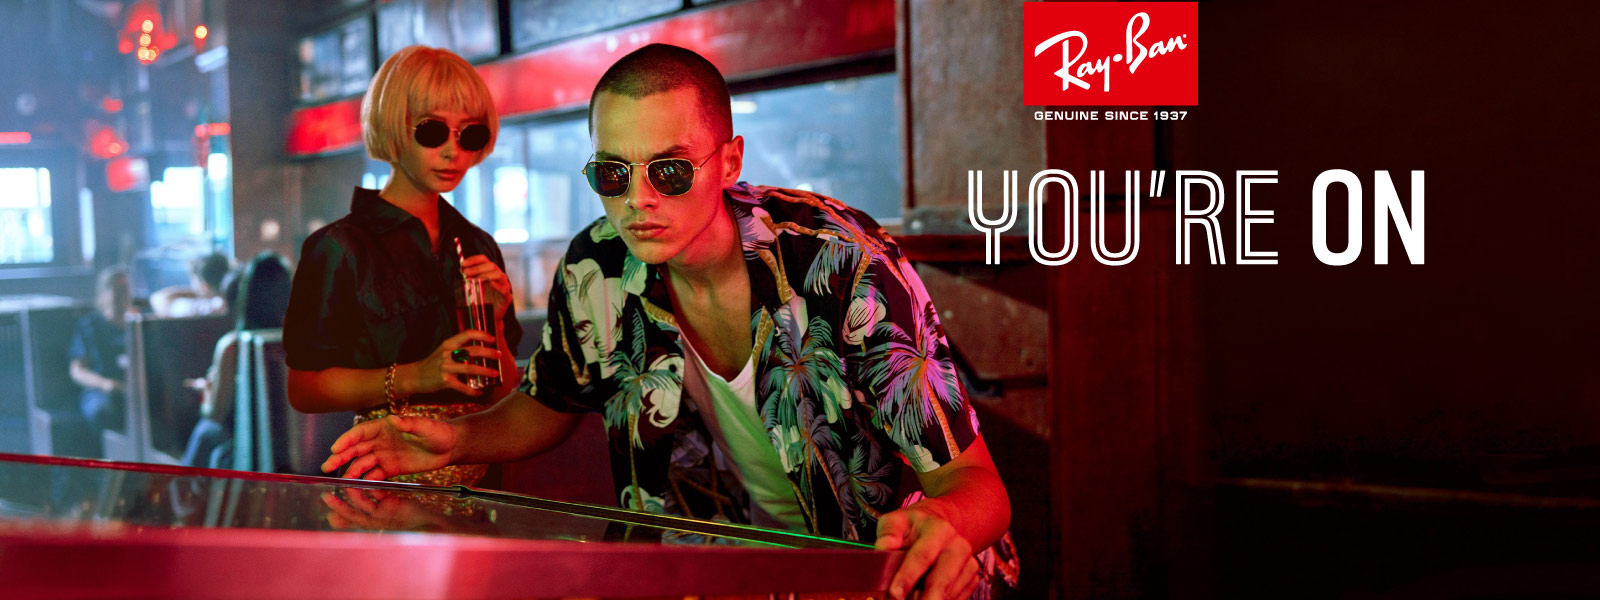 Ray Ban Men and women eyeglass, eyewear, frames online